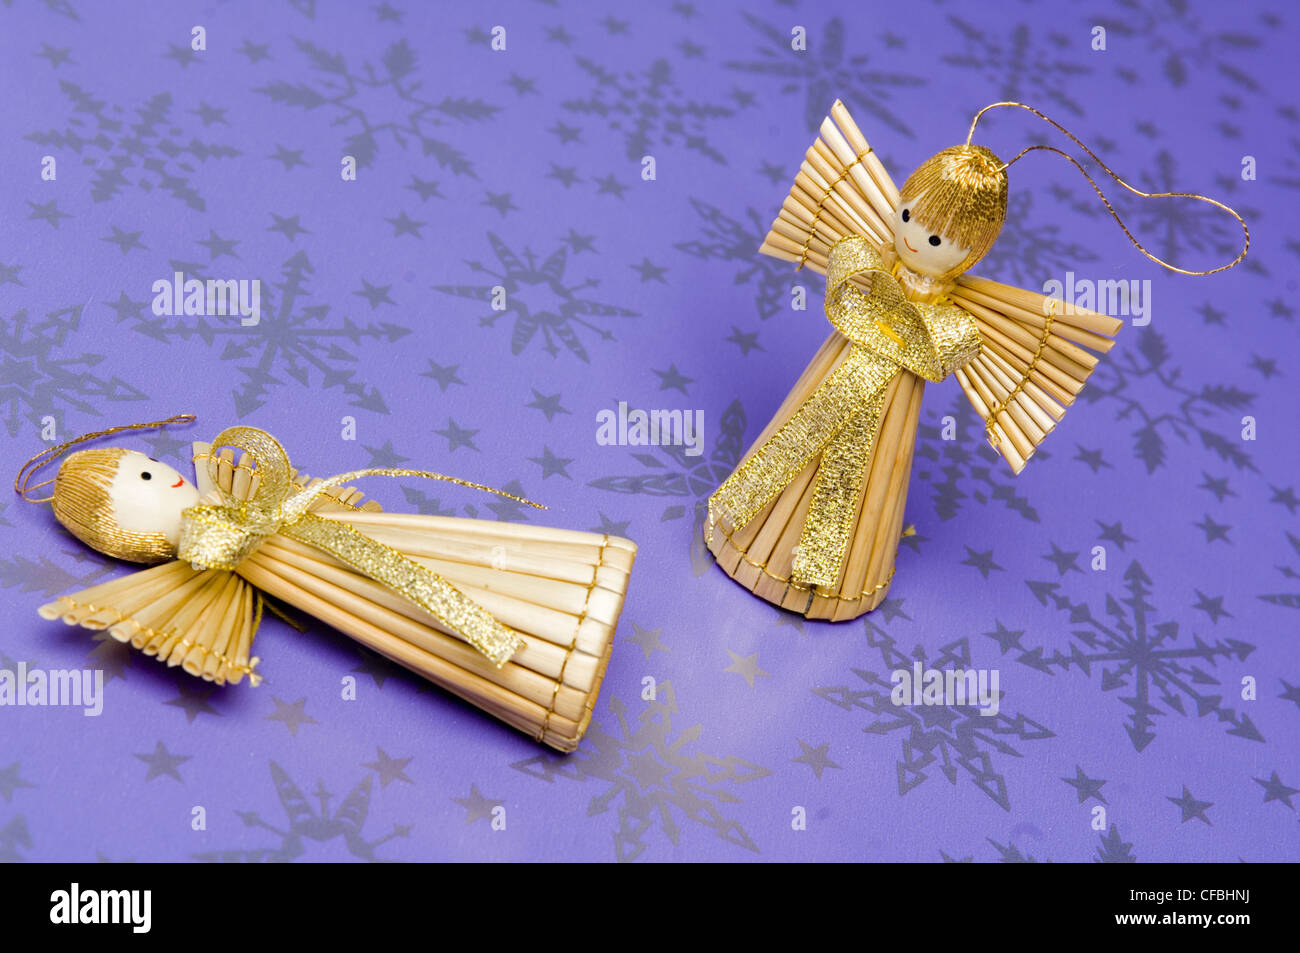 Christmas Angels Stock Photos & Christmas Angels Stock Images - Alamy